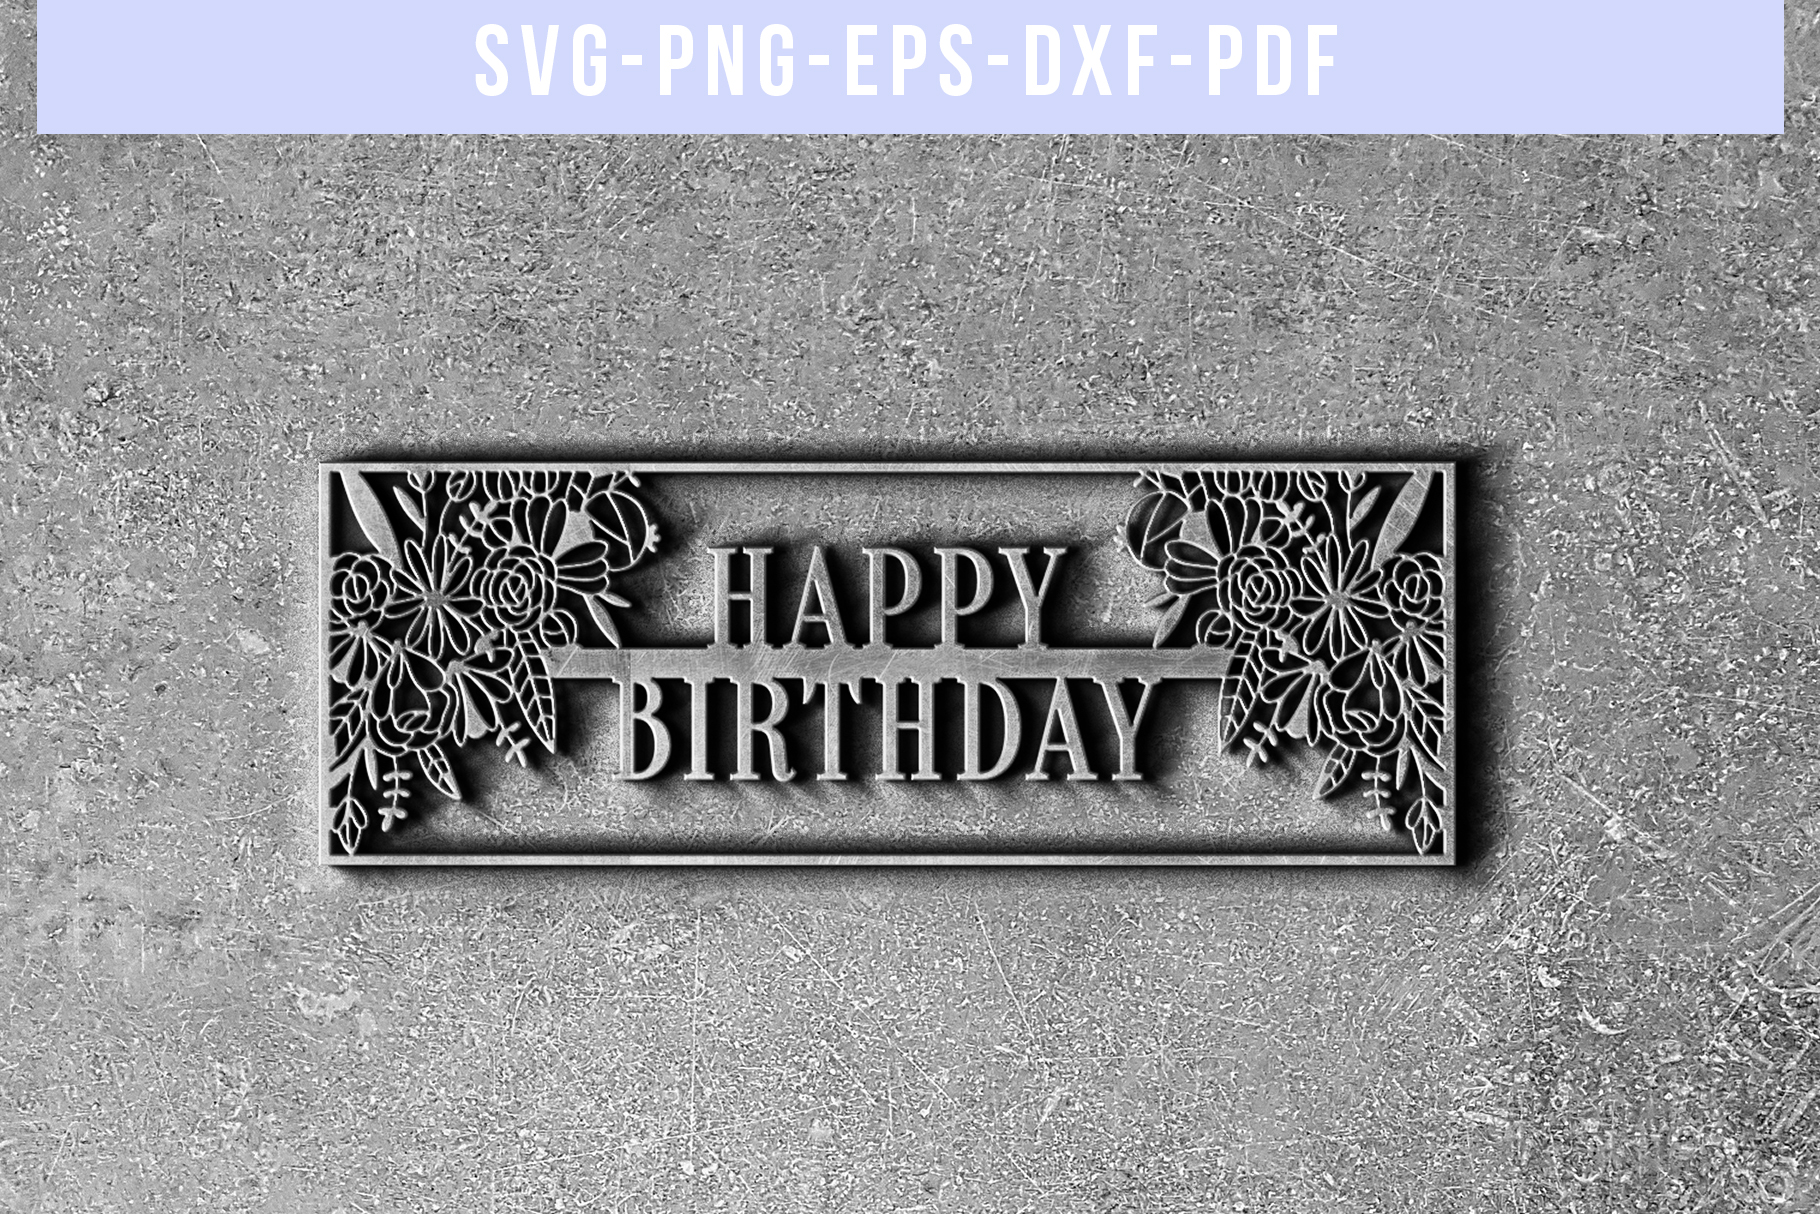 Happy Birthday Papercut Template, Birthday Frame SVG PDF DXF example image 5